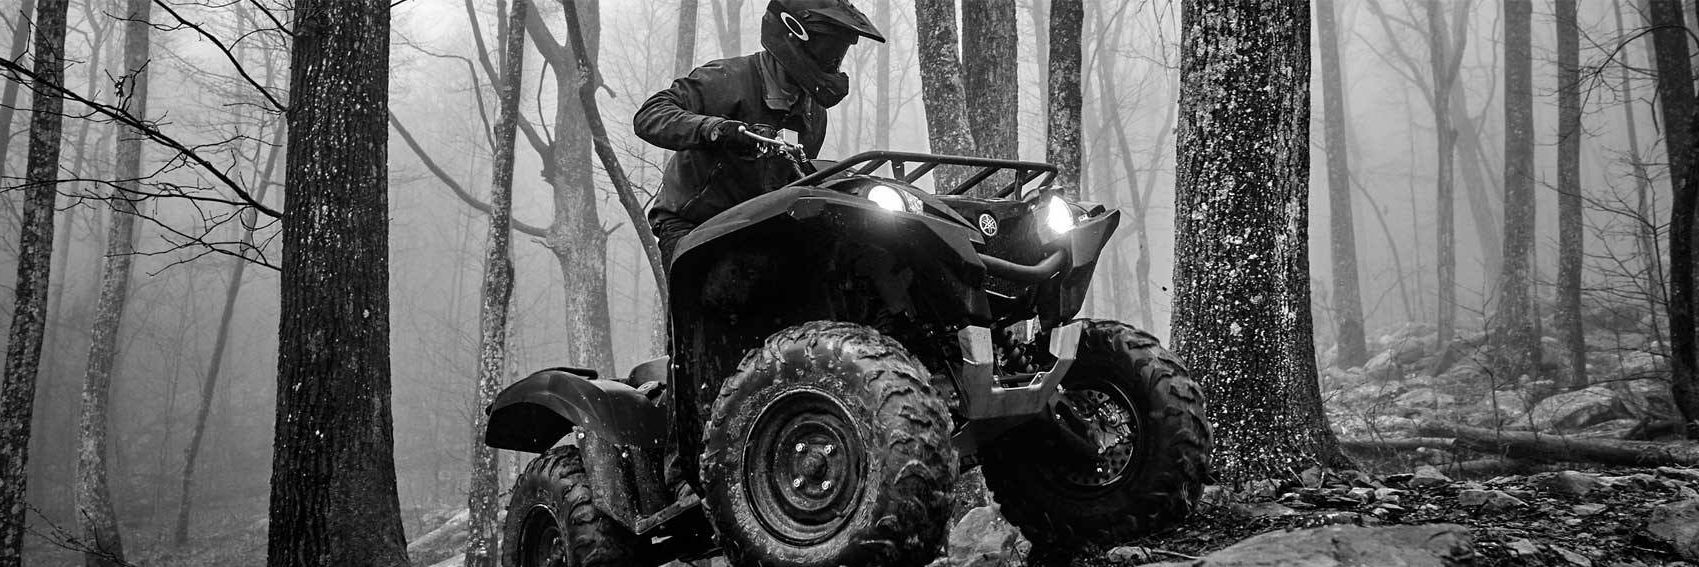 Shop ATVs at Joe's Cycle Shop, Inc.